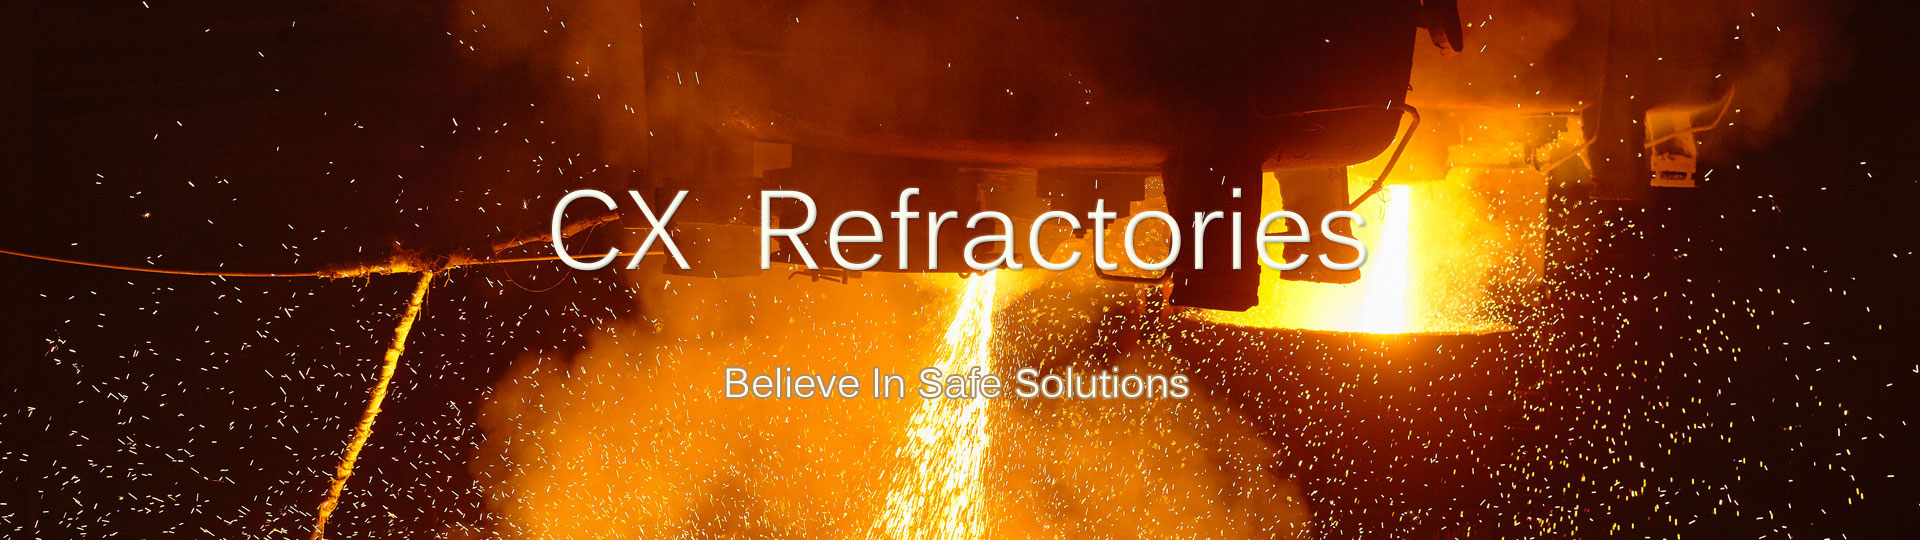 changxing refractory offers refractory products and solutions